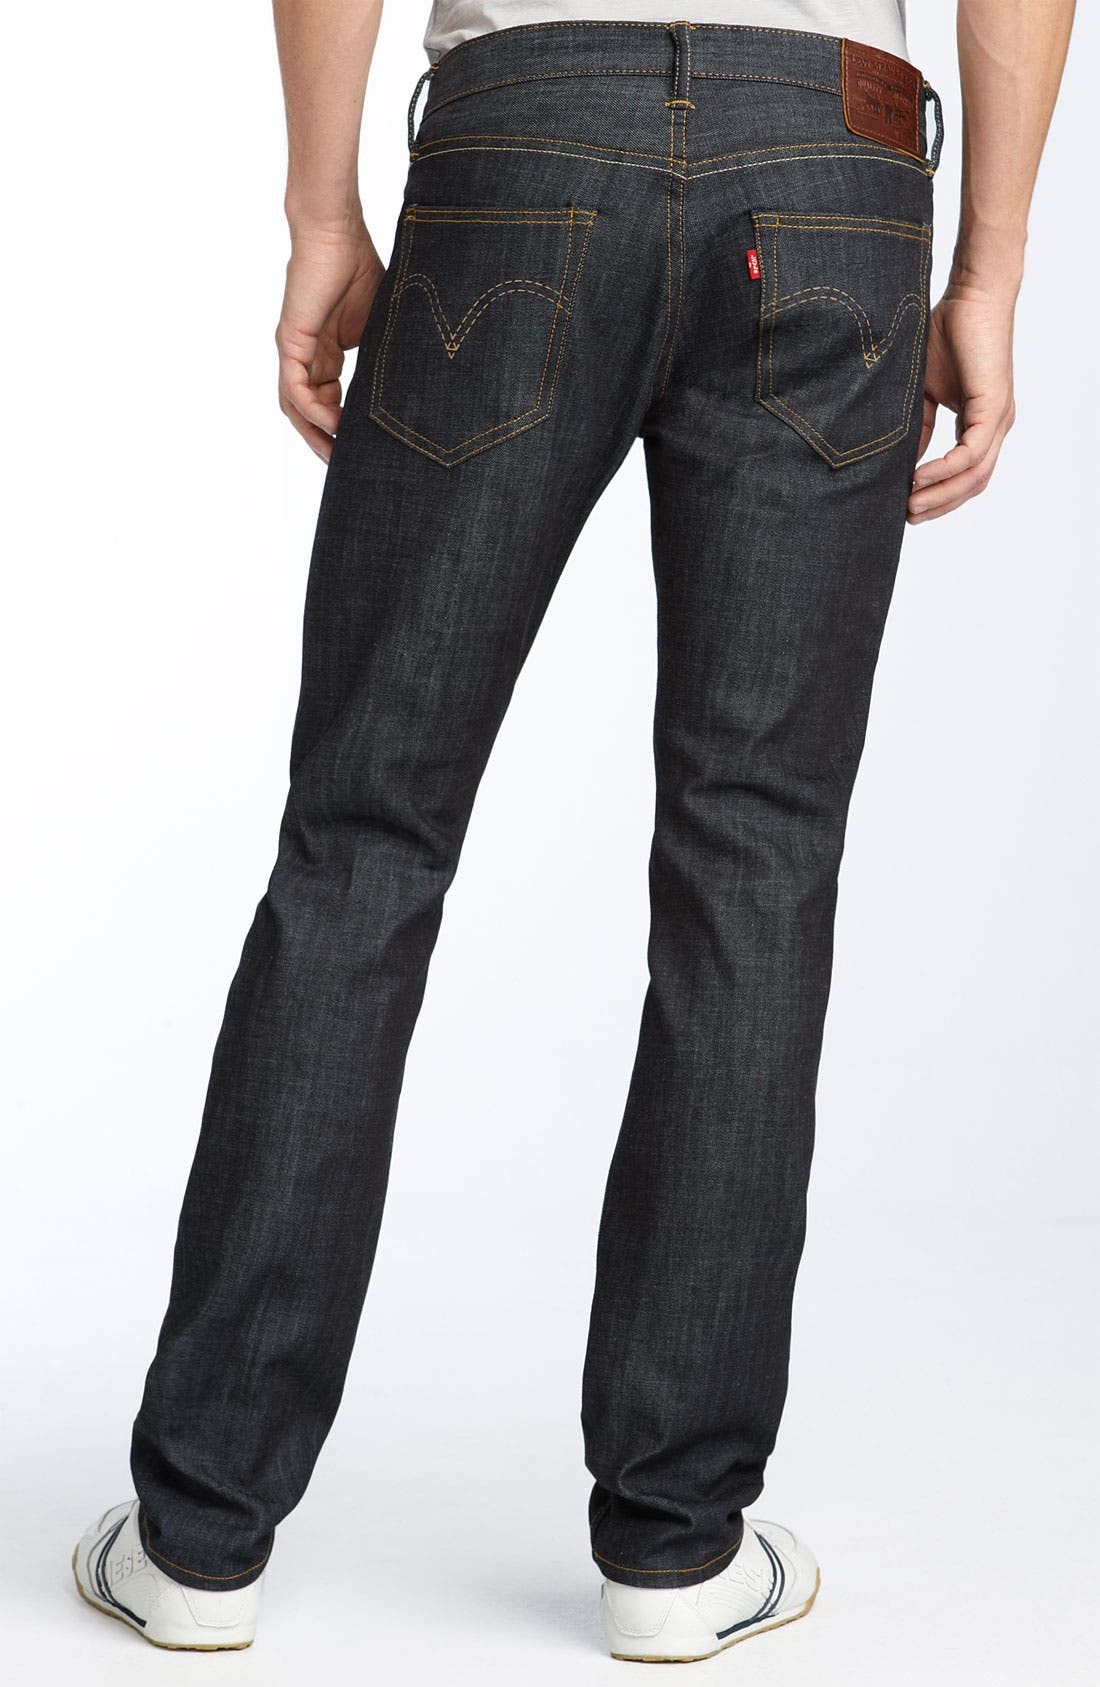 Alternate Image 1 Selected - Levi's® Red Tab™ 'Matchstick' Skinny Jeans (Stretch Rigid)